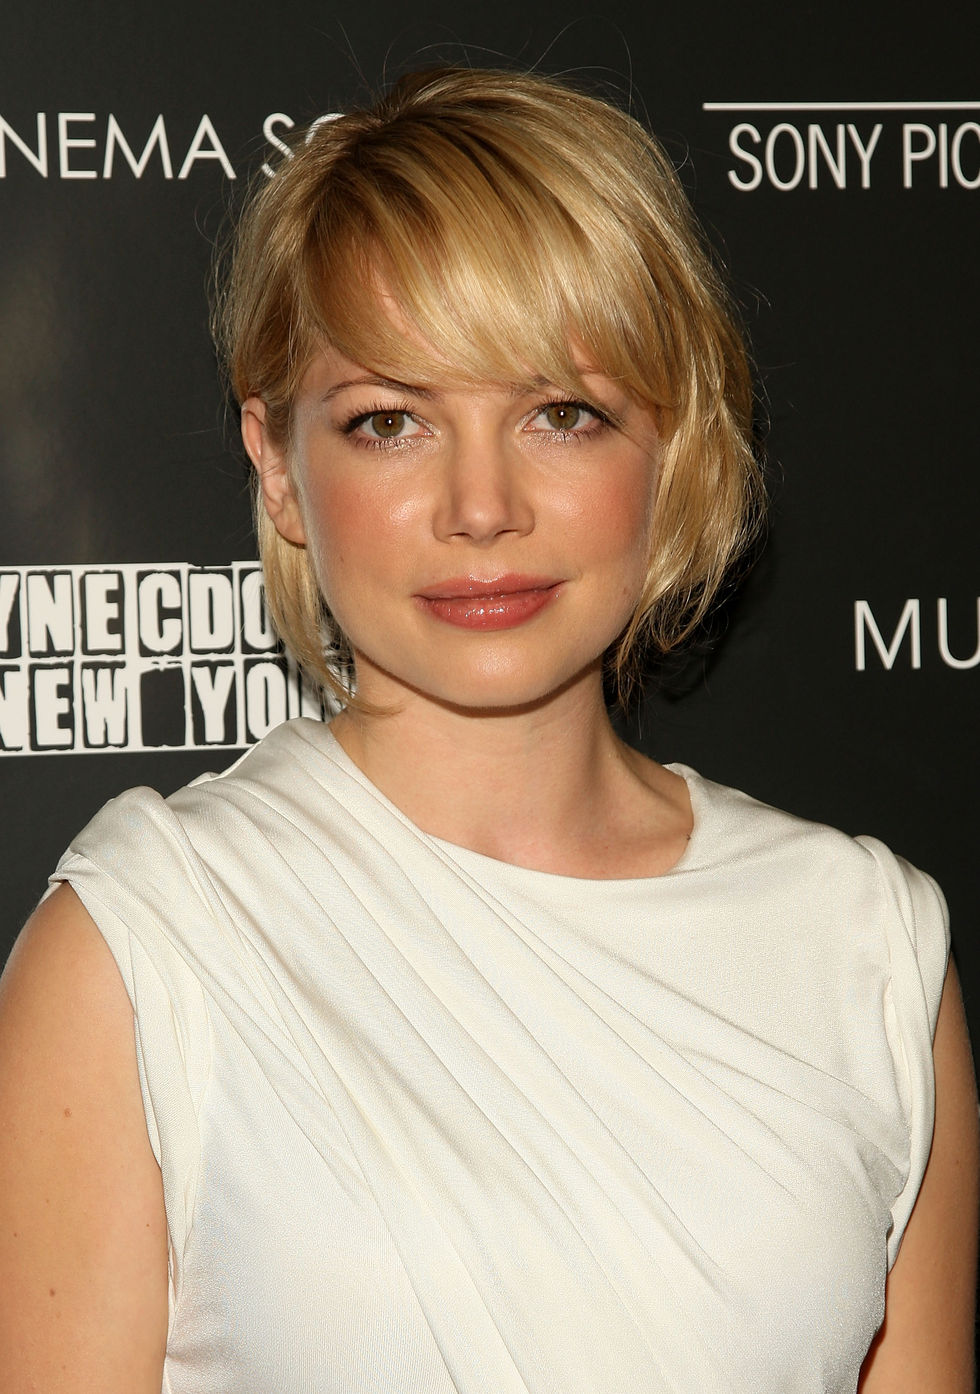 michelle-williams-synecdoche-new-york-screening-in-new-york-city-01